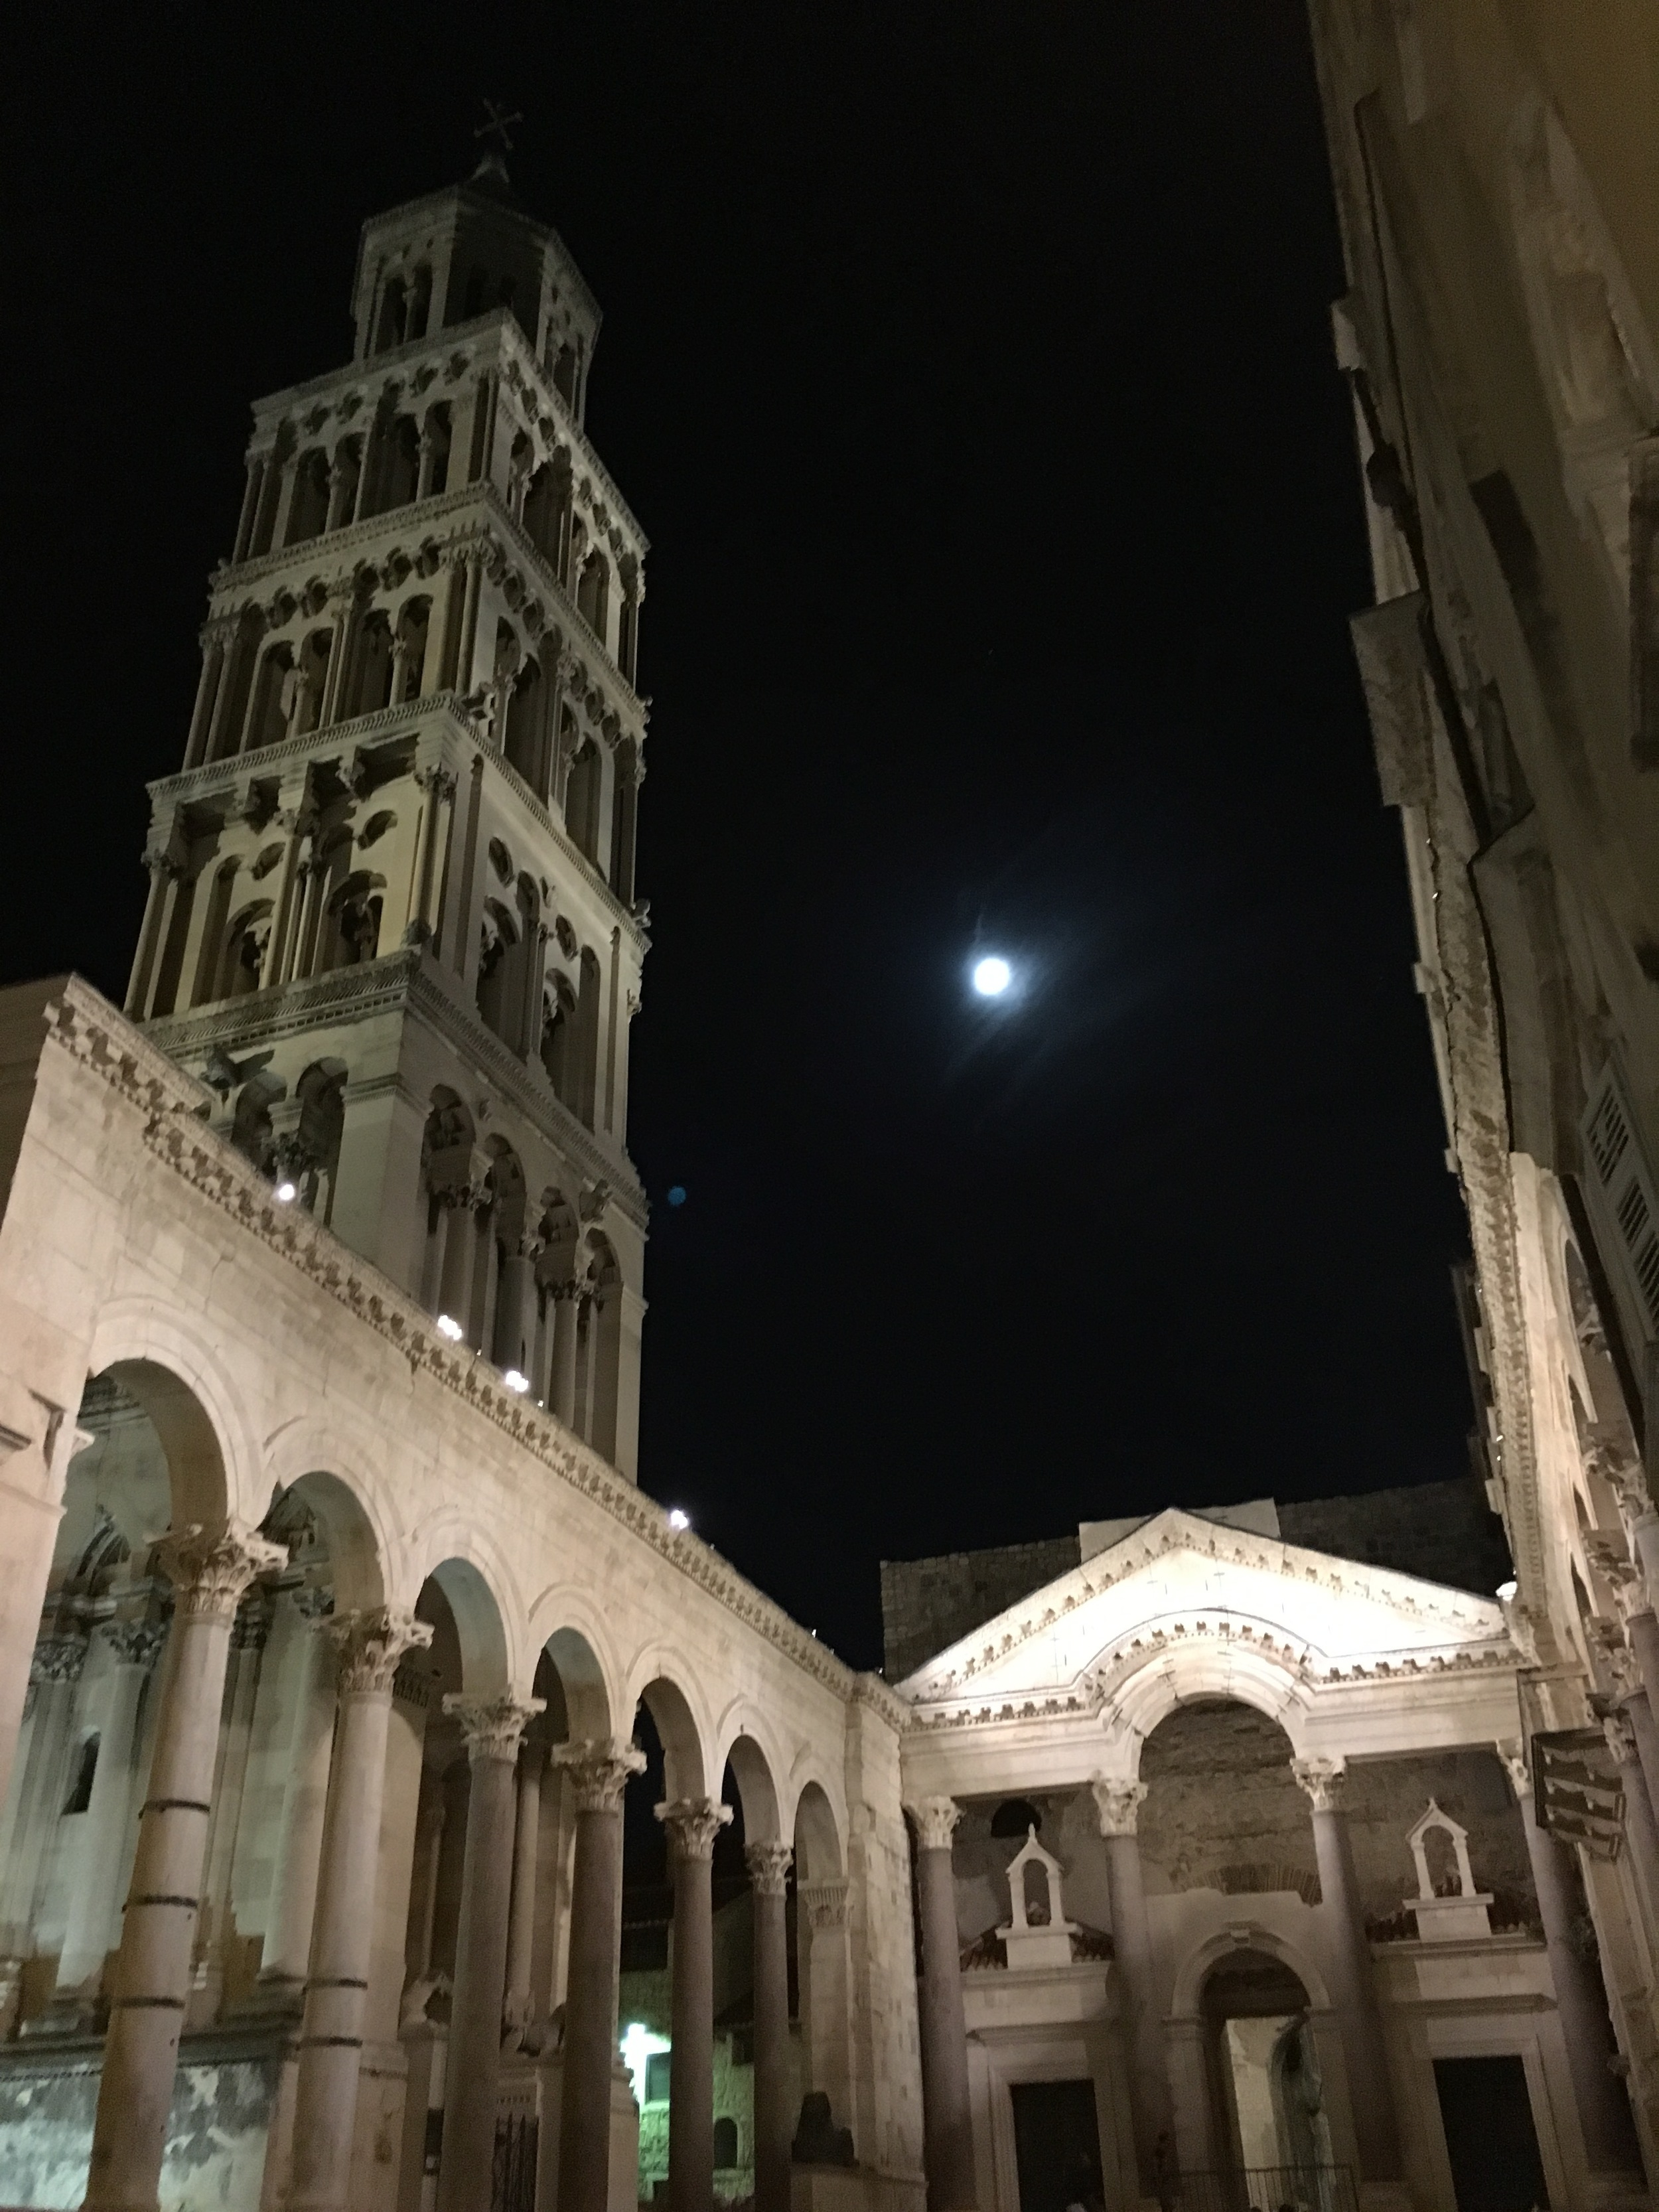 The cathedral in the moonlight.